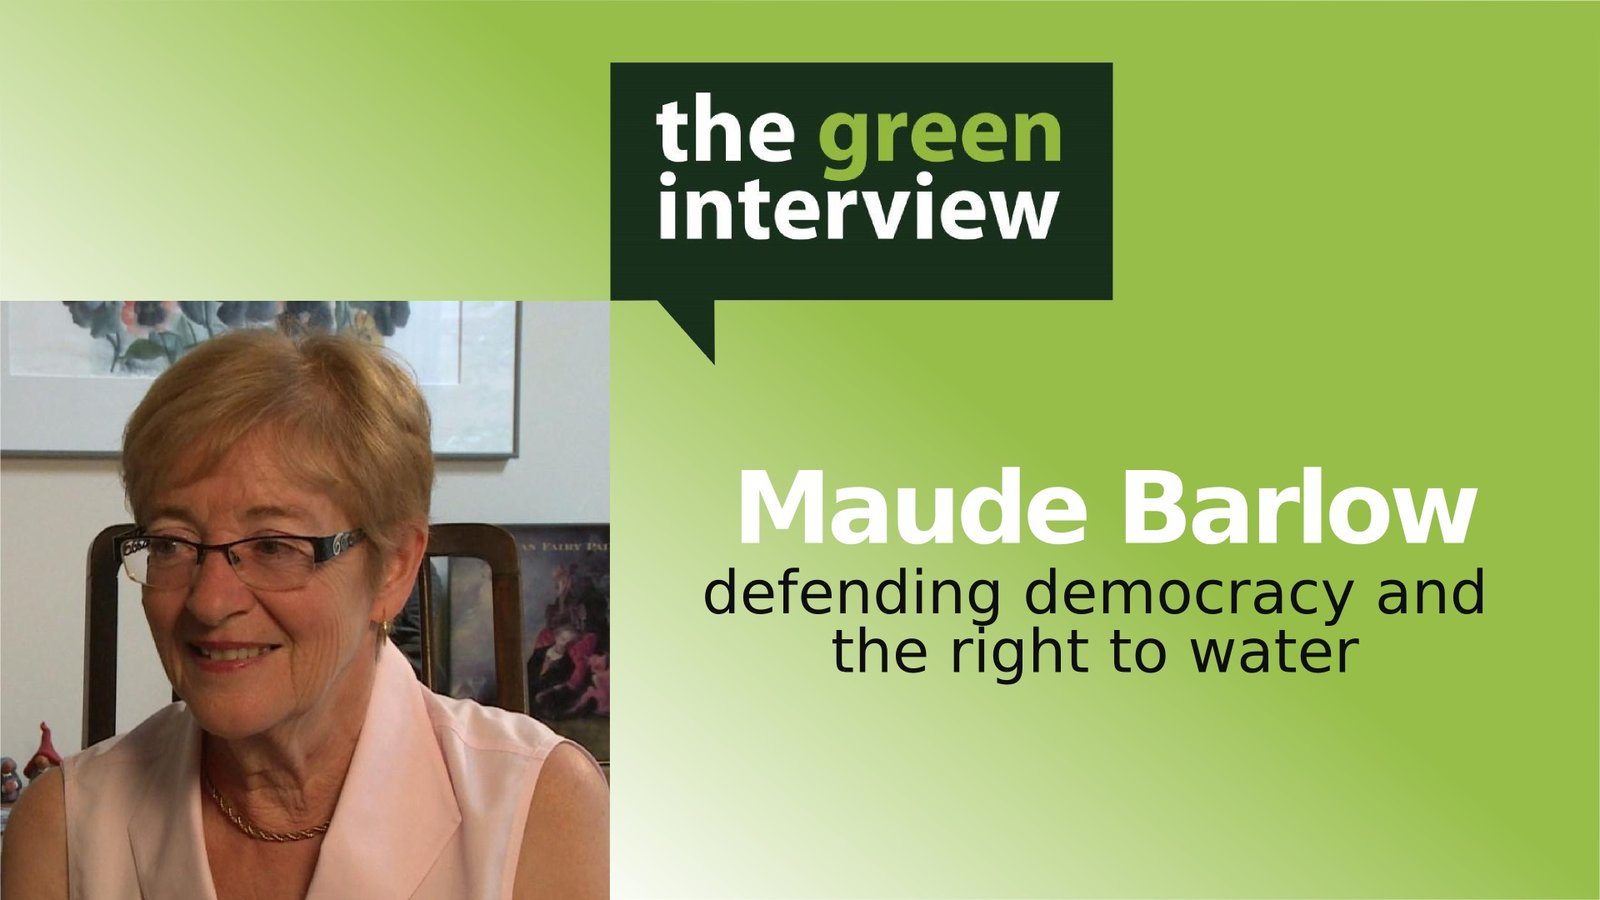 Maude Barlow: Defending Democracy and the Right to Water